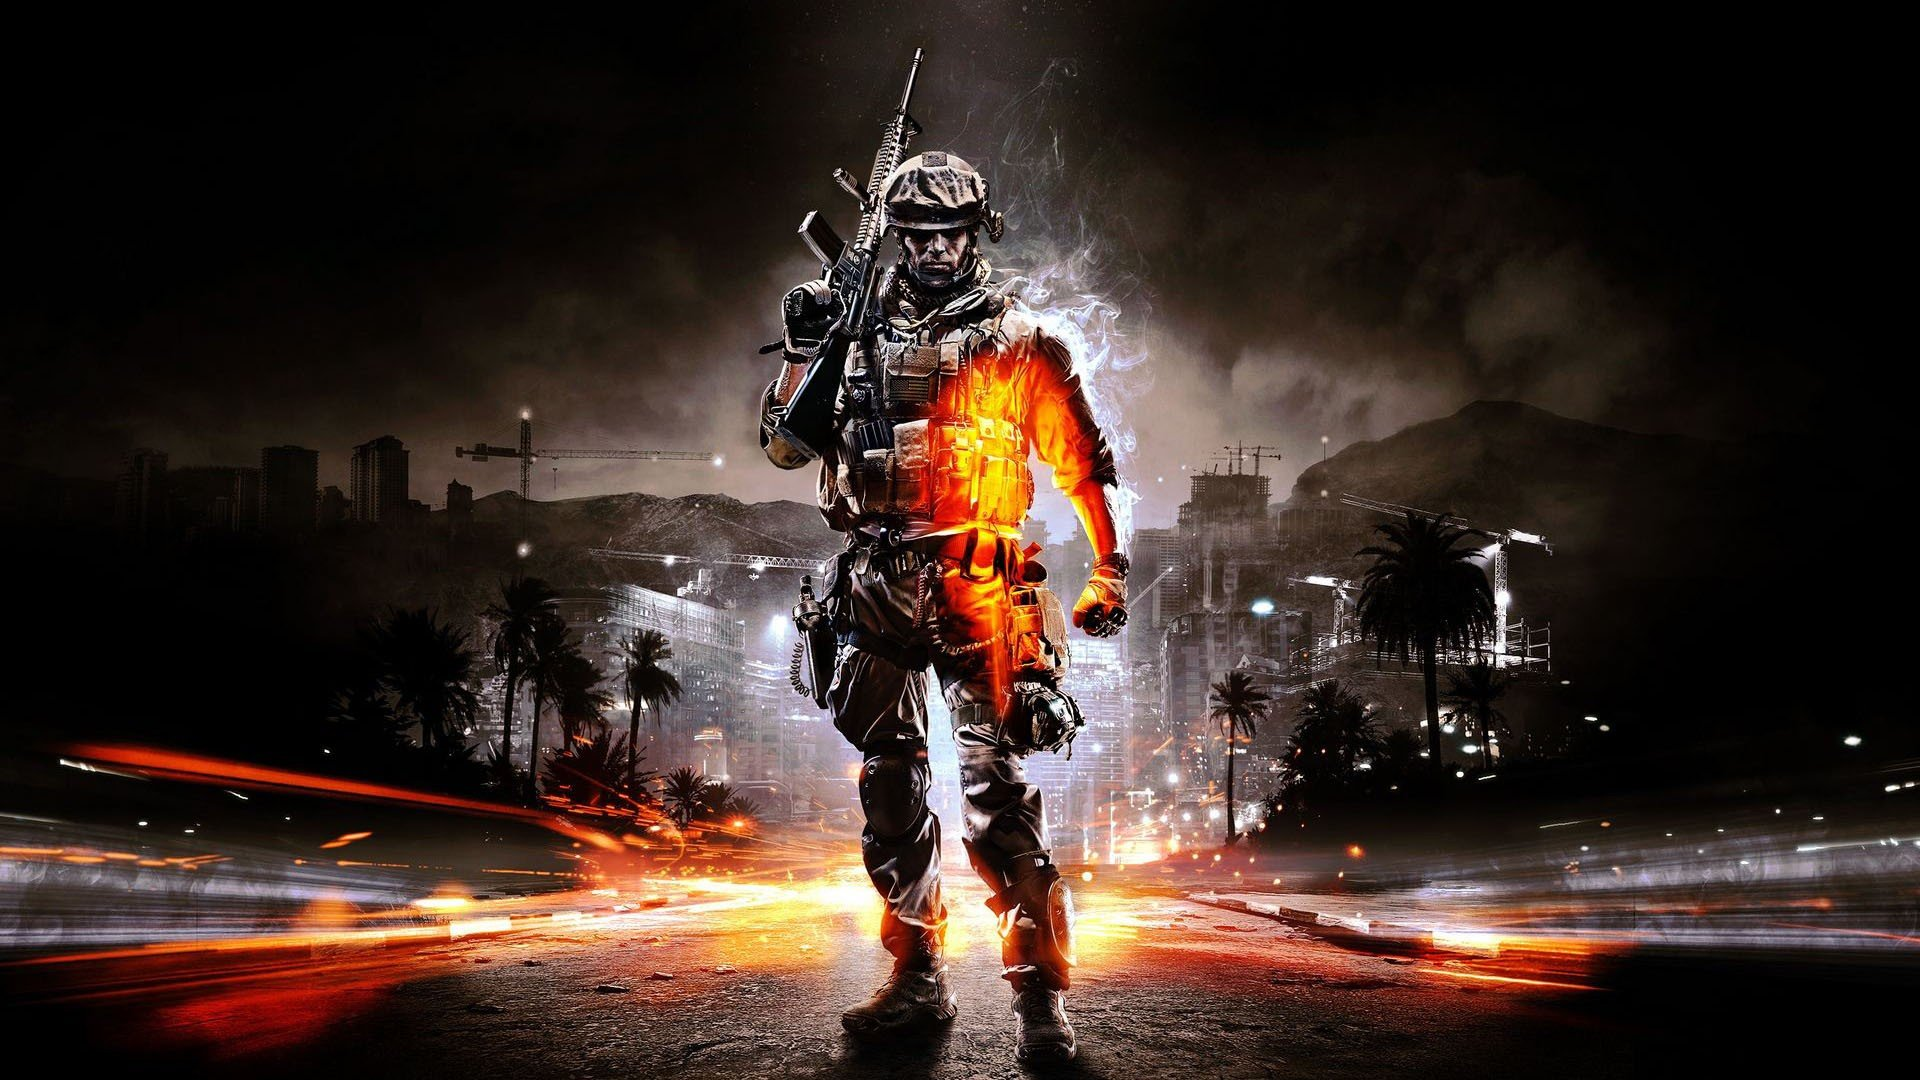 soldiers video games Battlefield guns lights weapons Battlefield 3 cities time lapse game